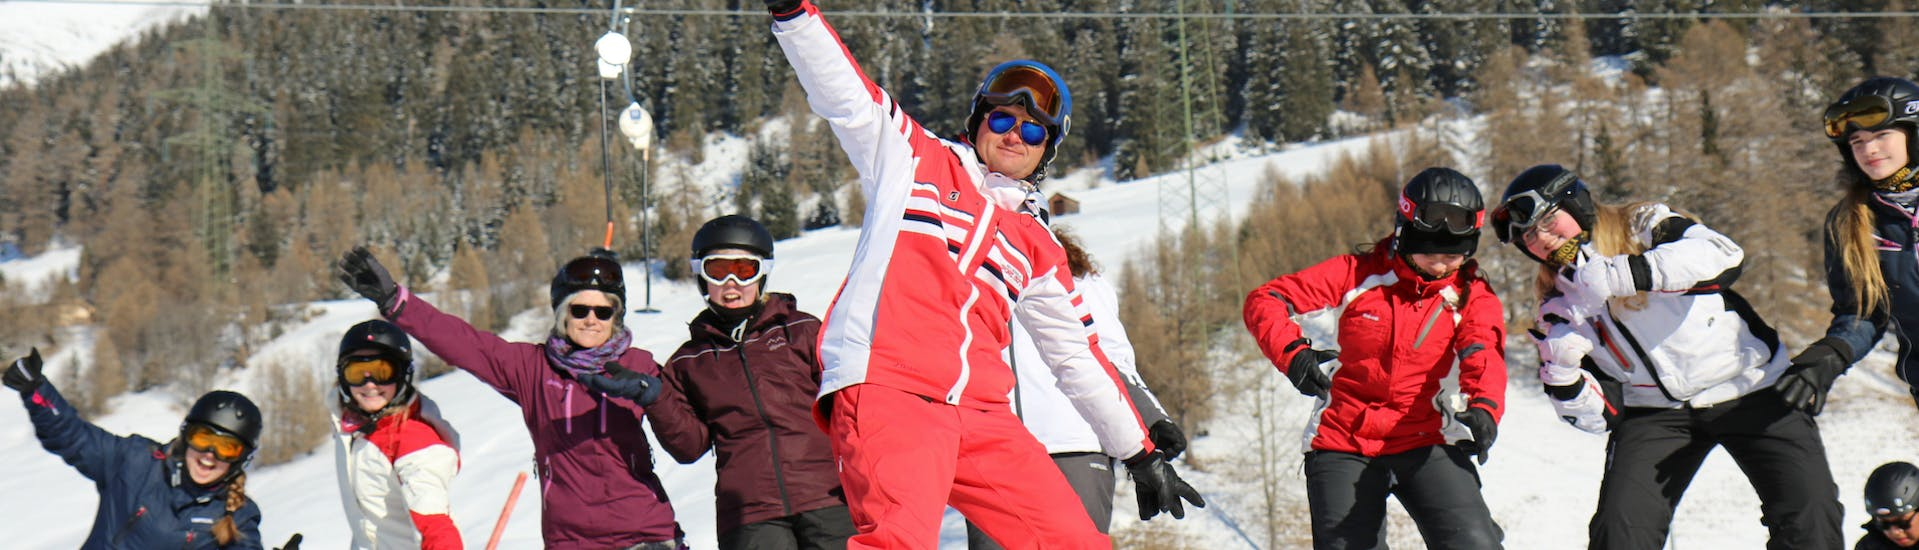 Teen Ski Lessons (8-14 y.) for Beginners with Skischule Pfunds - Hero image